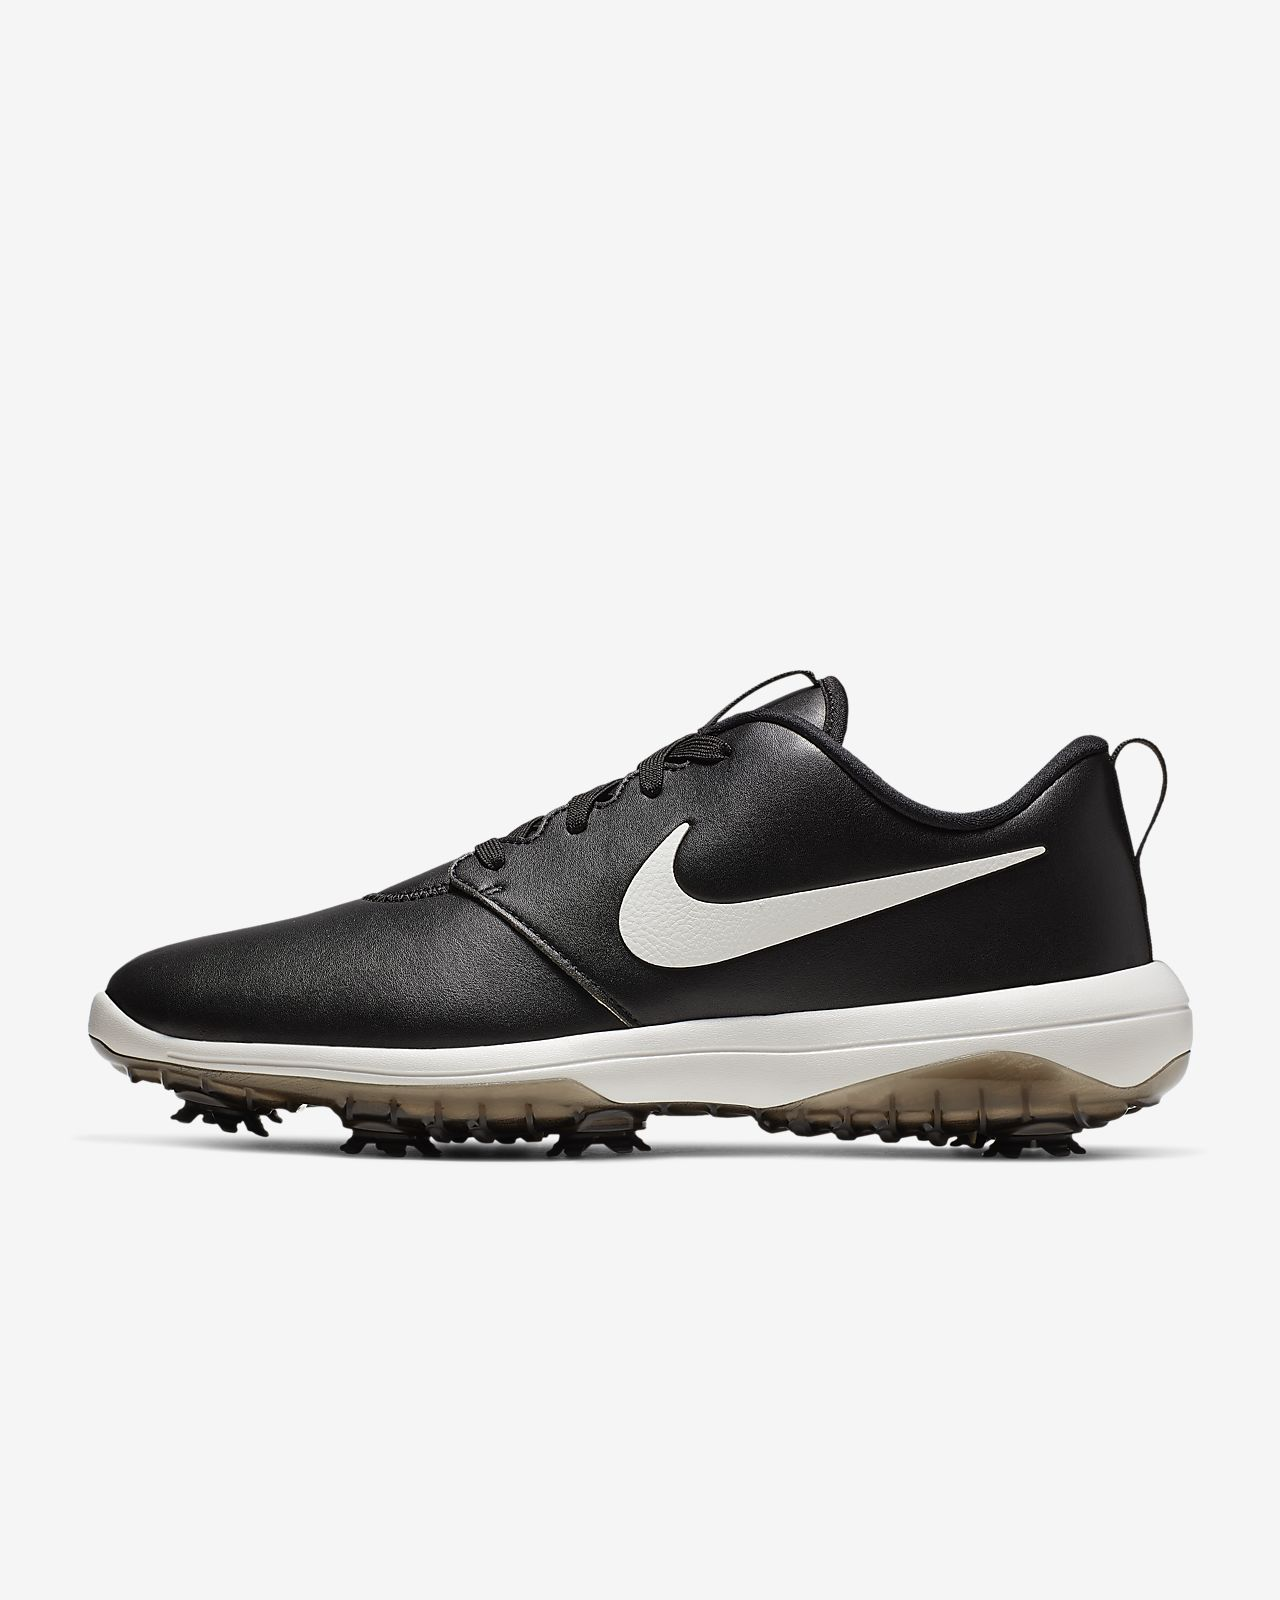 finest selection 79857 bf525 Men s Golf Shoe. Nike Roshe G Tour